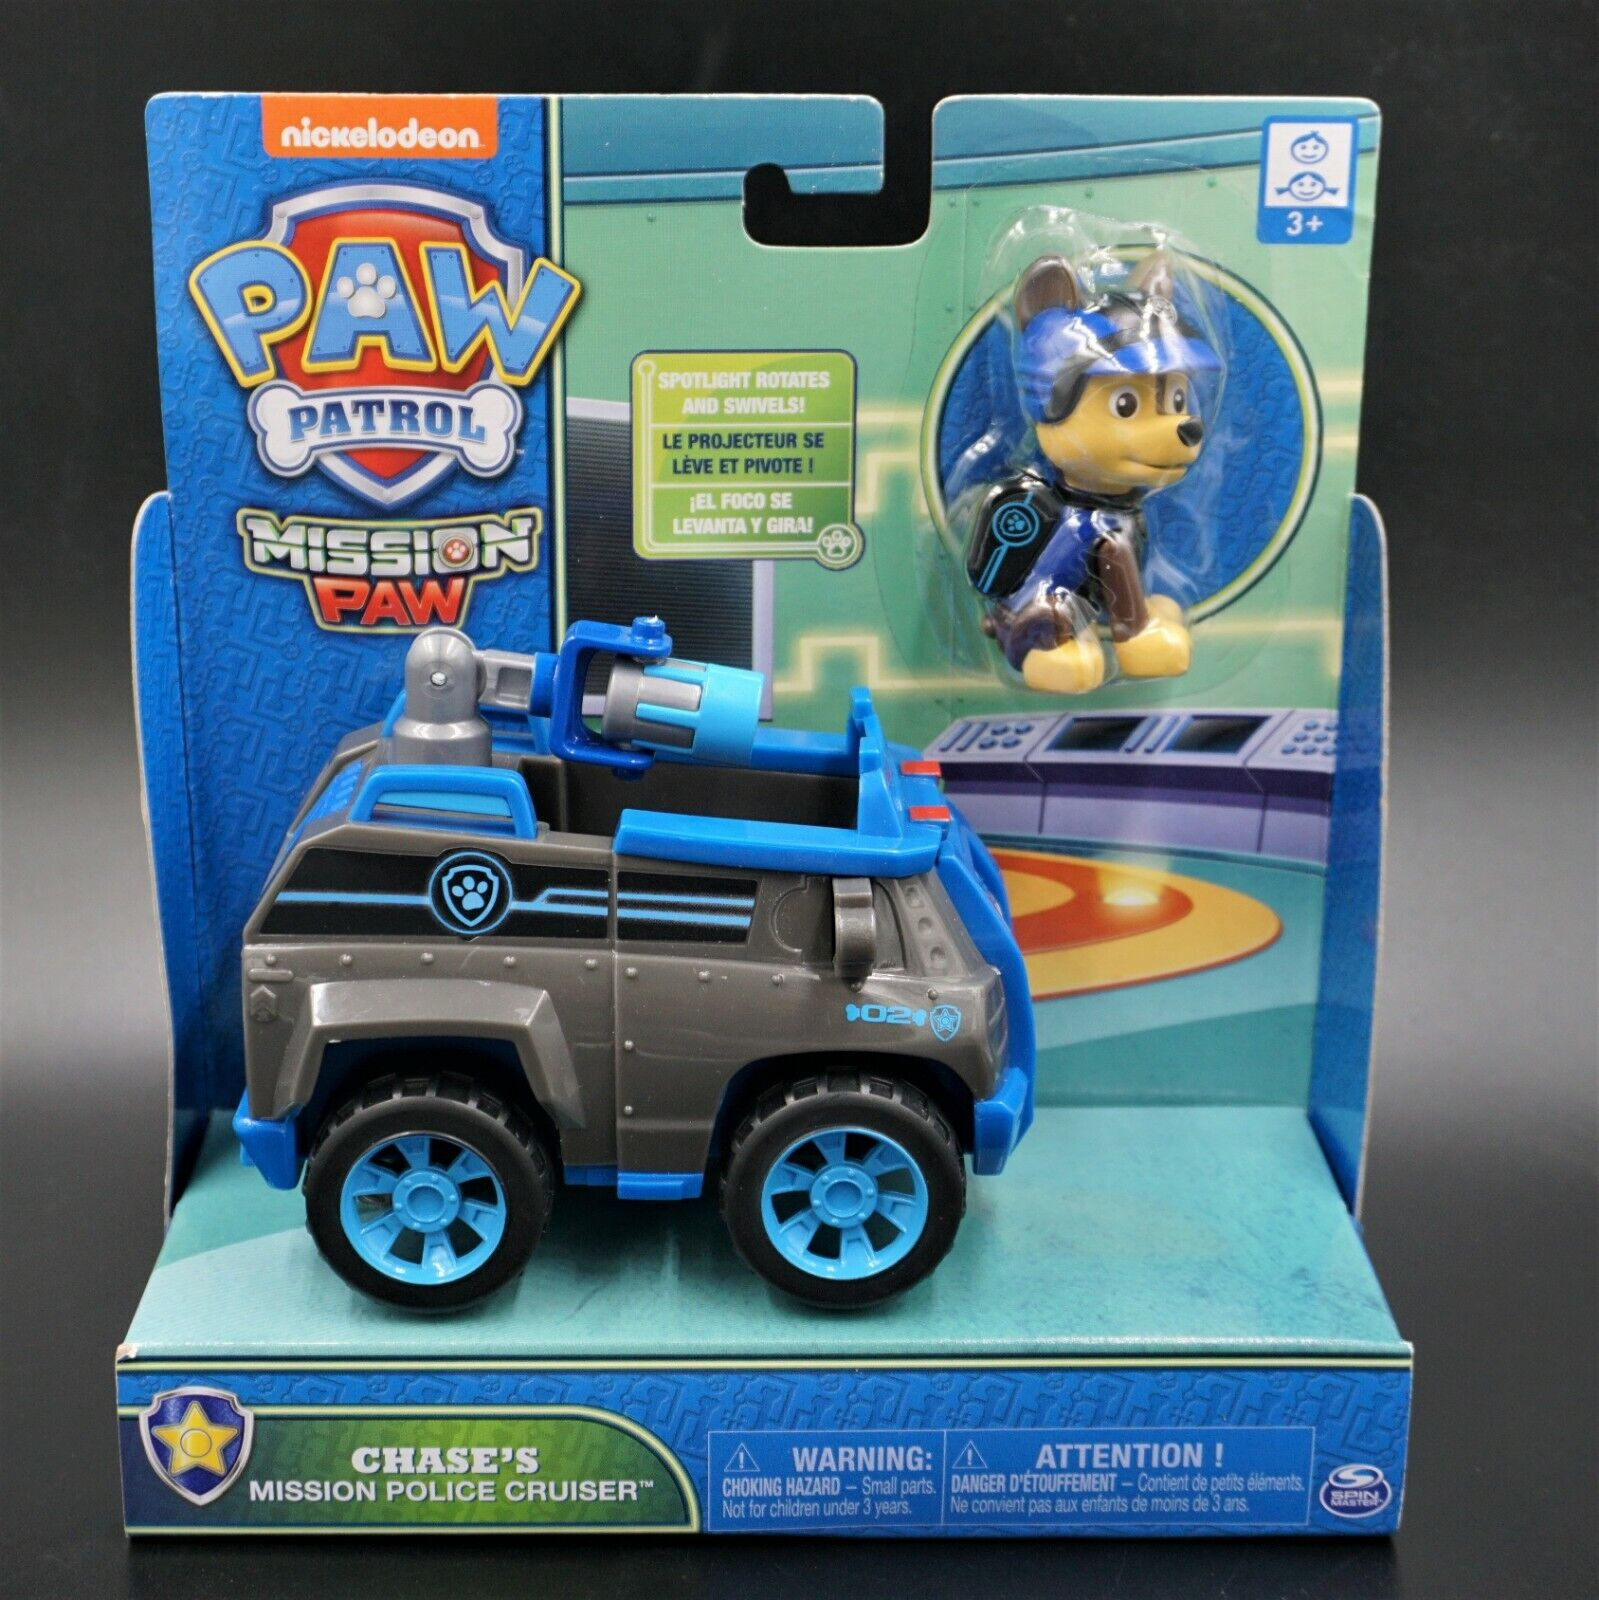 Paw Patrol: Mission Paw - Chase's Mission Police Cruiser